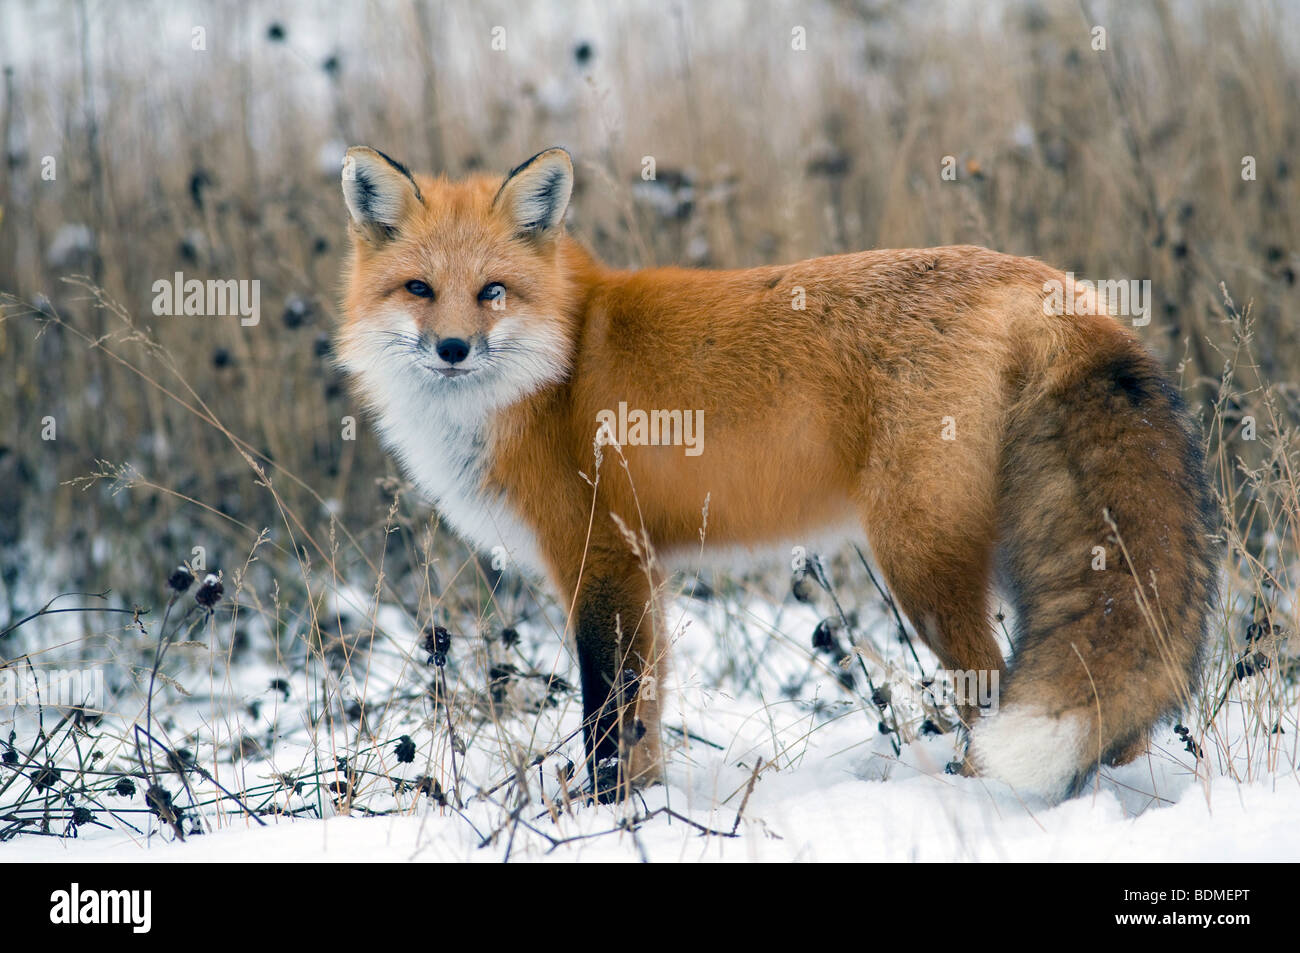 Red Fox (Vulpes vulpes), North America, by Dominique Braud/Dembinsky Photo Assoc - Stock Image